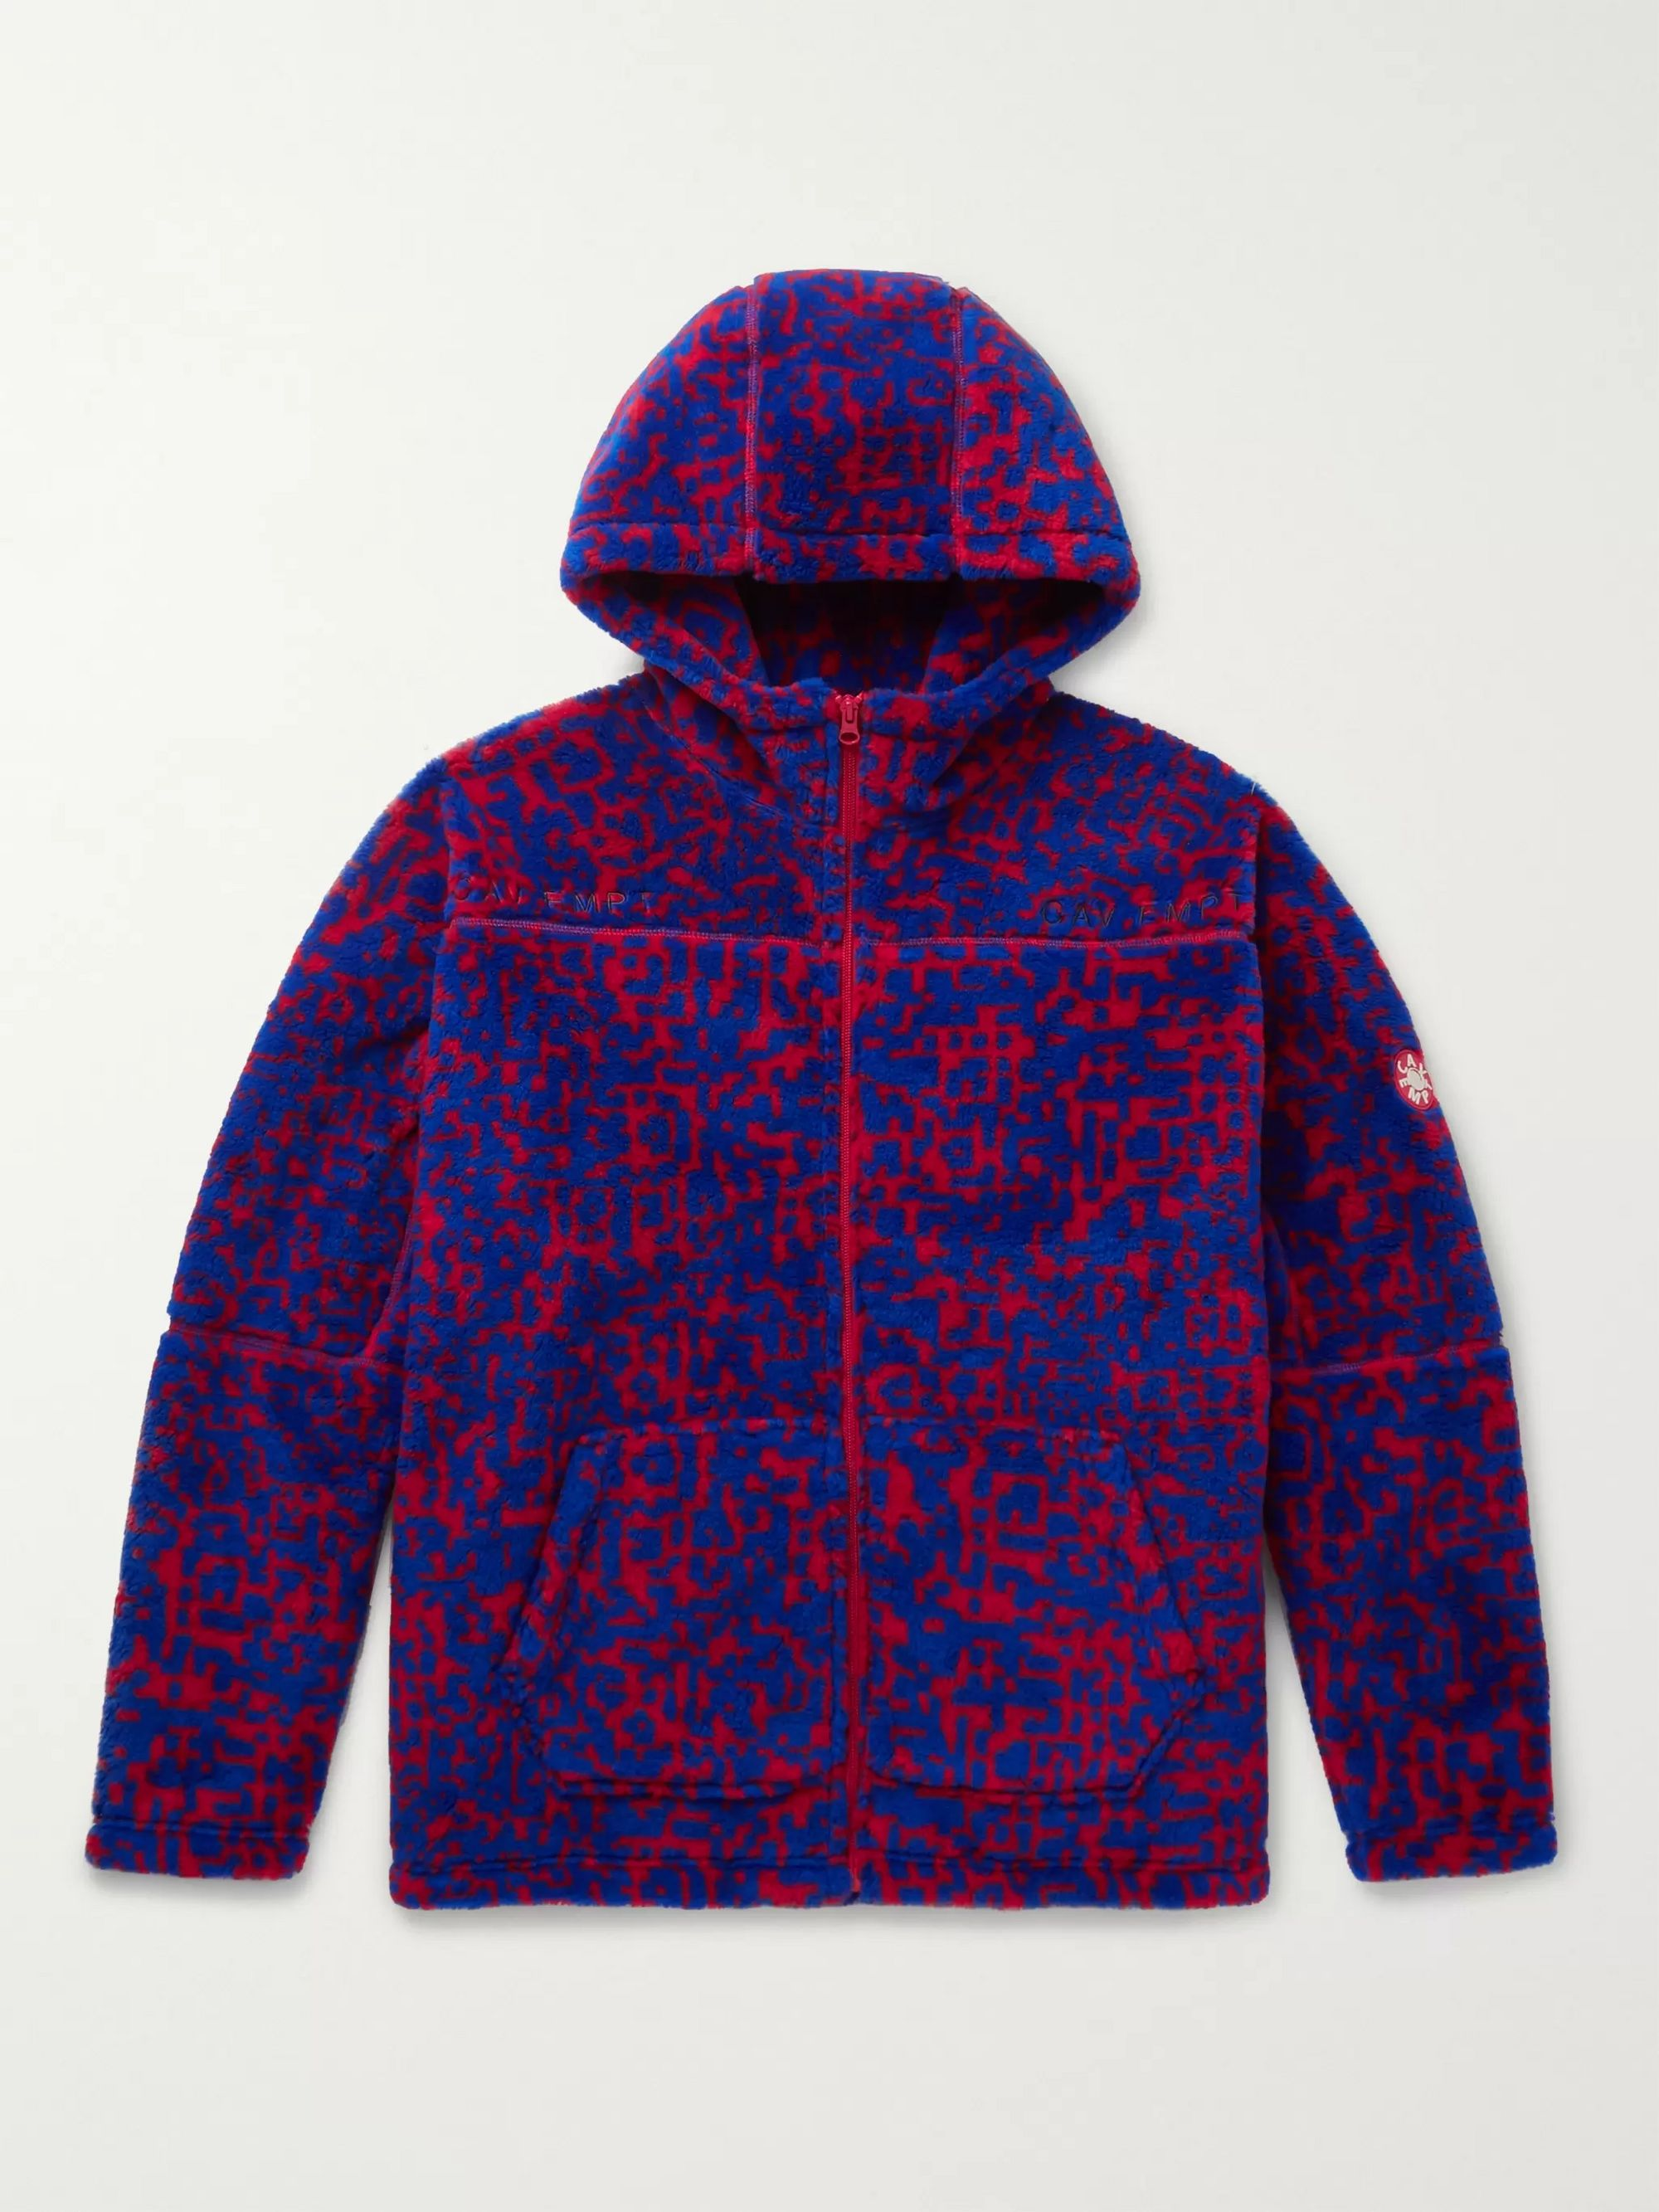 Printed Fleece Zip Up Hoodie by Cav Empt